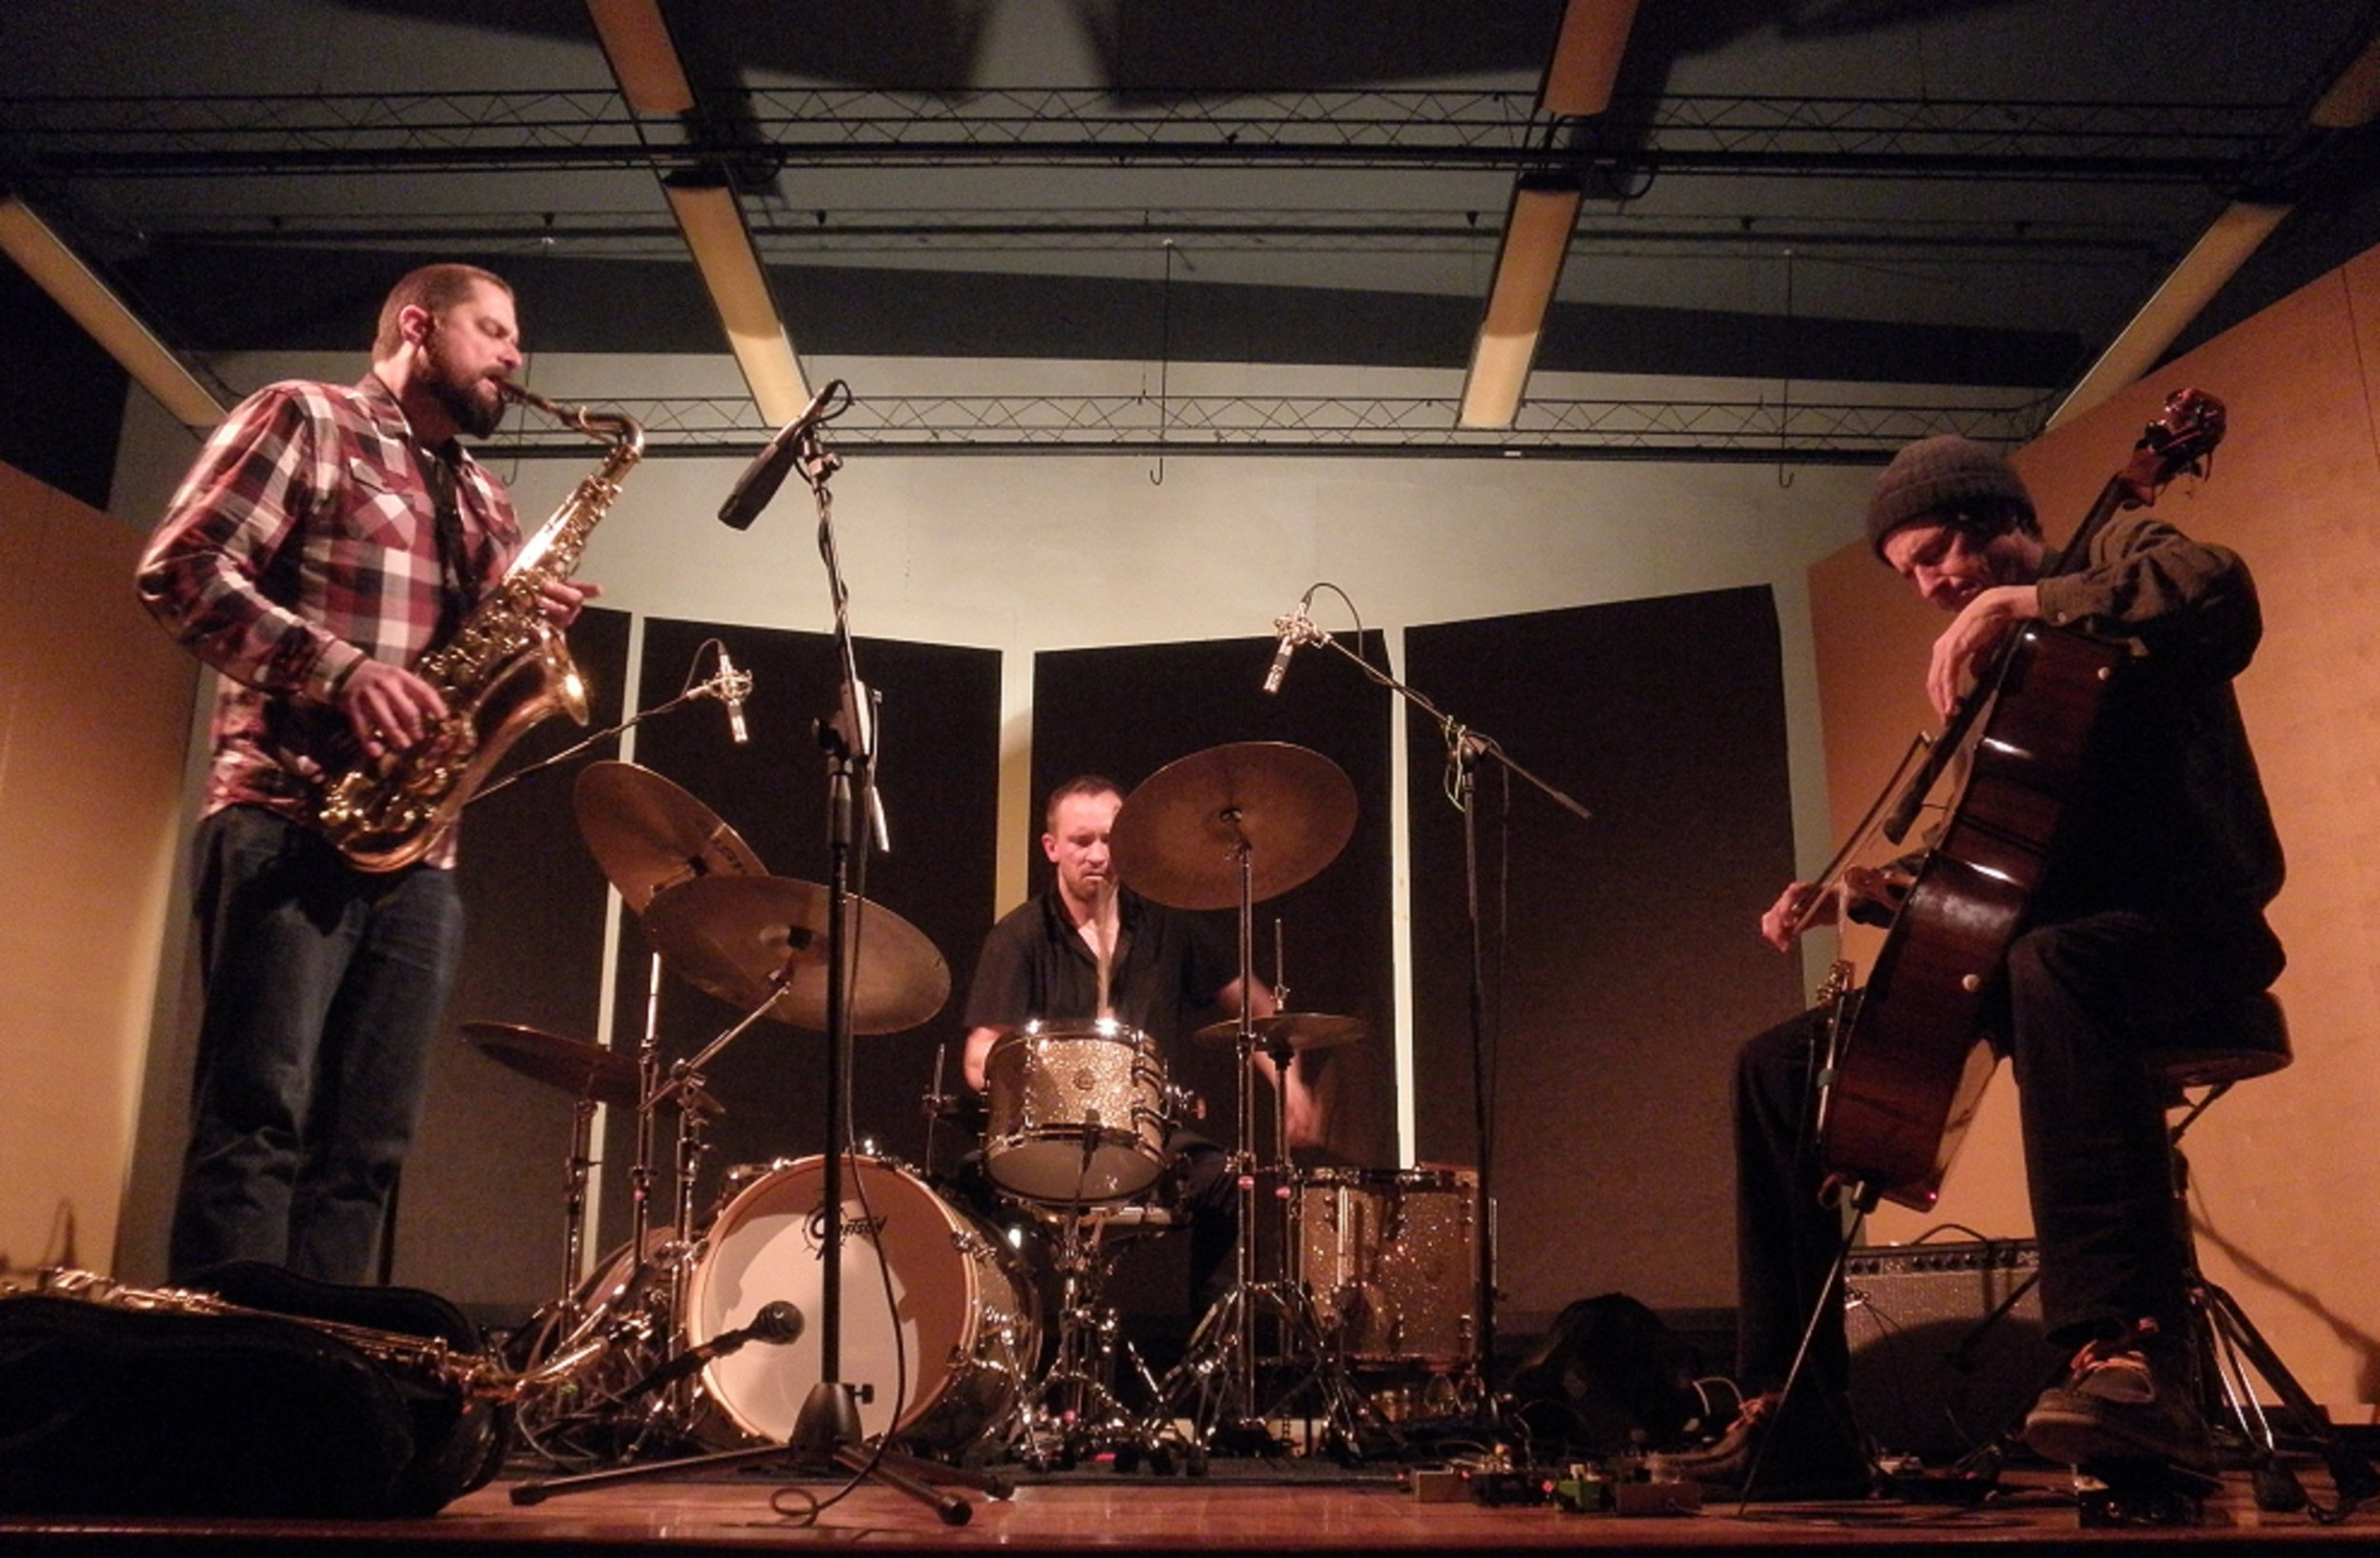 - Dave Rempis – alto/tenor/baritone saxophoneFred Lonberg-Holm - celloPaal Nilssen-Love - drums